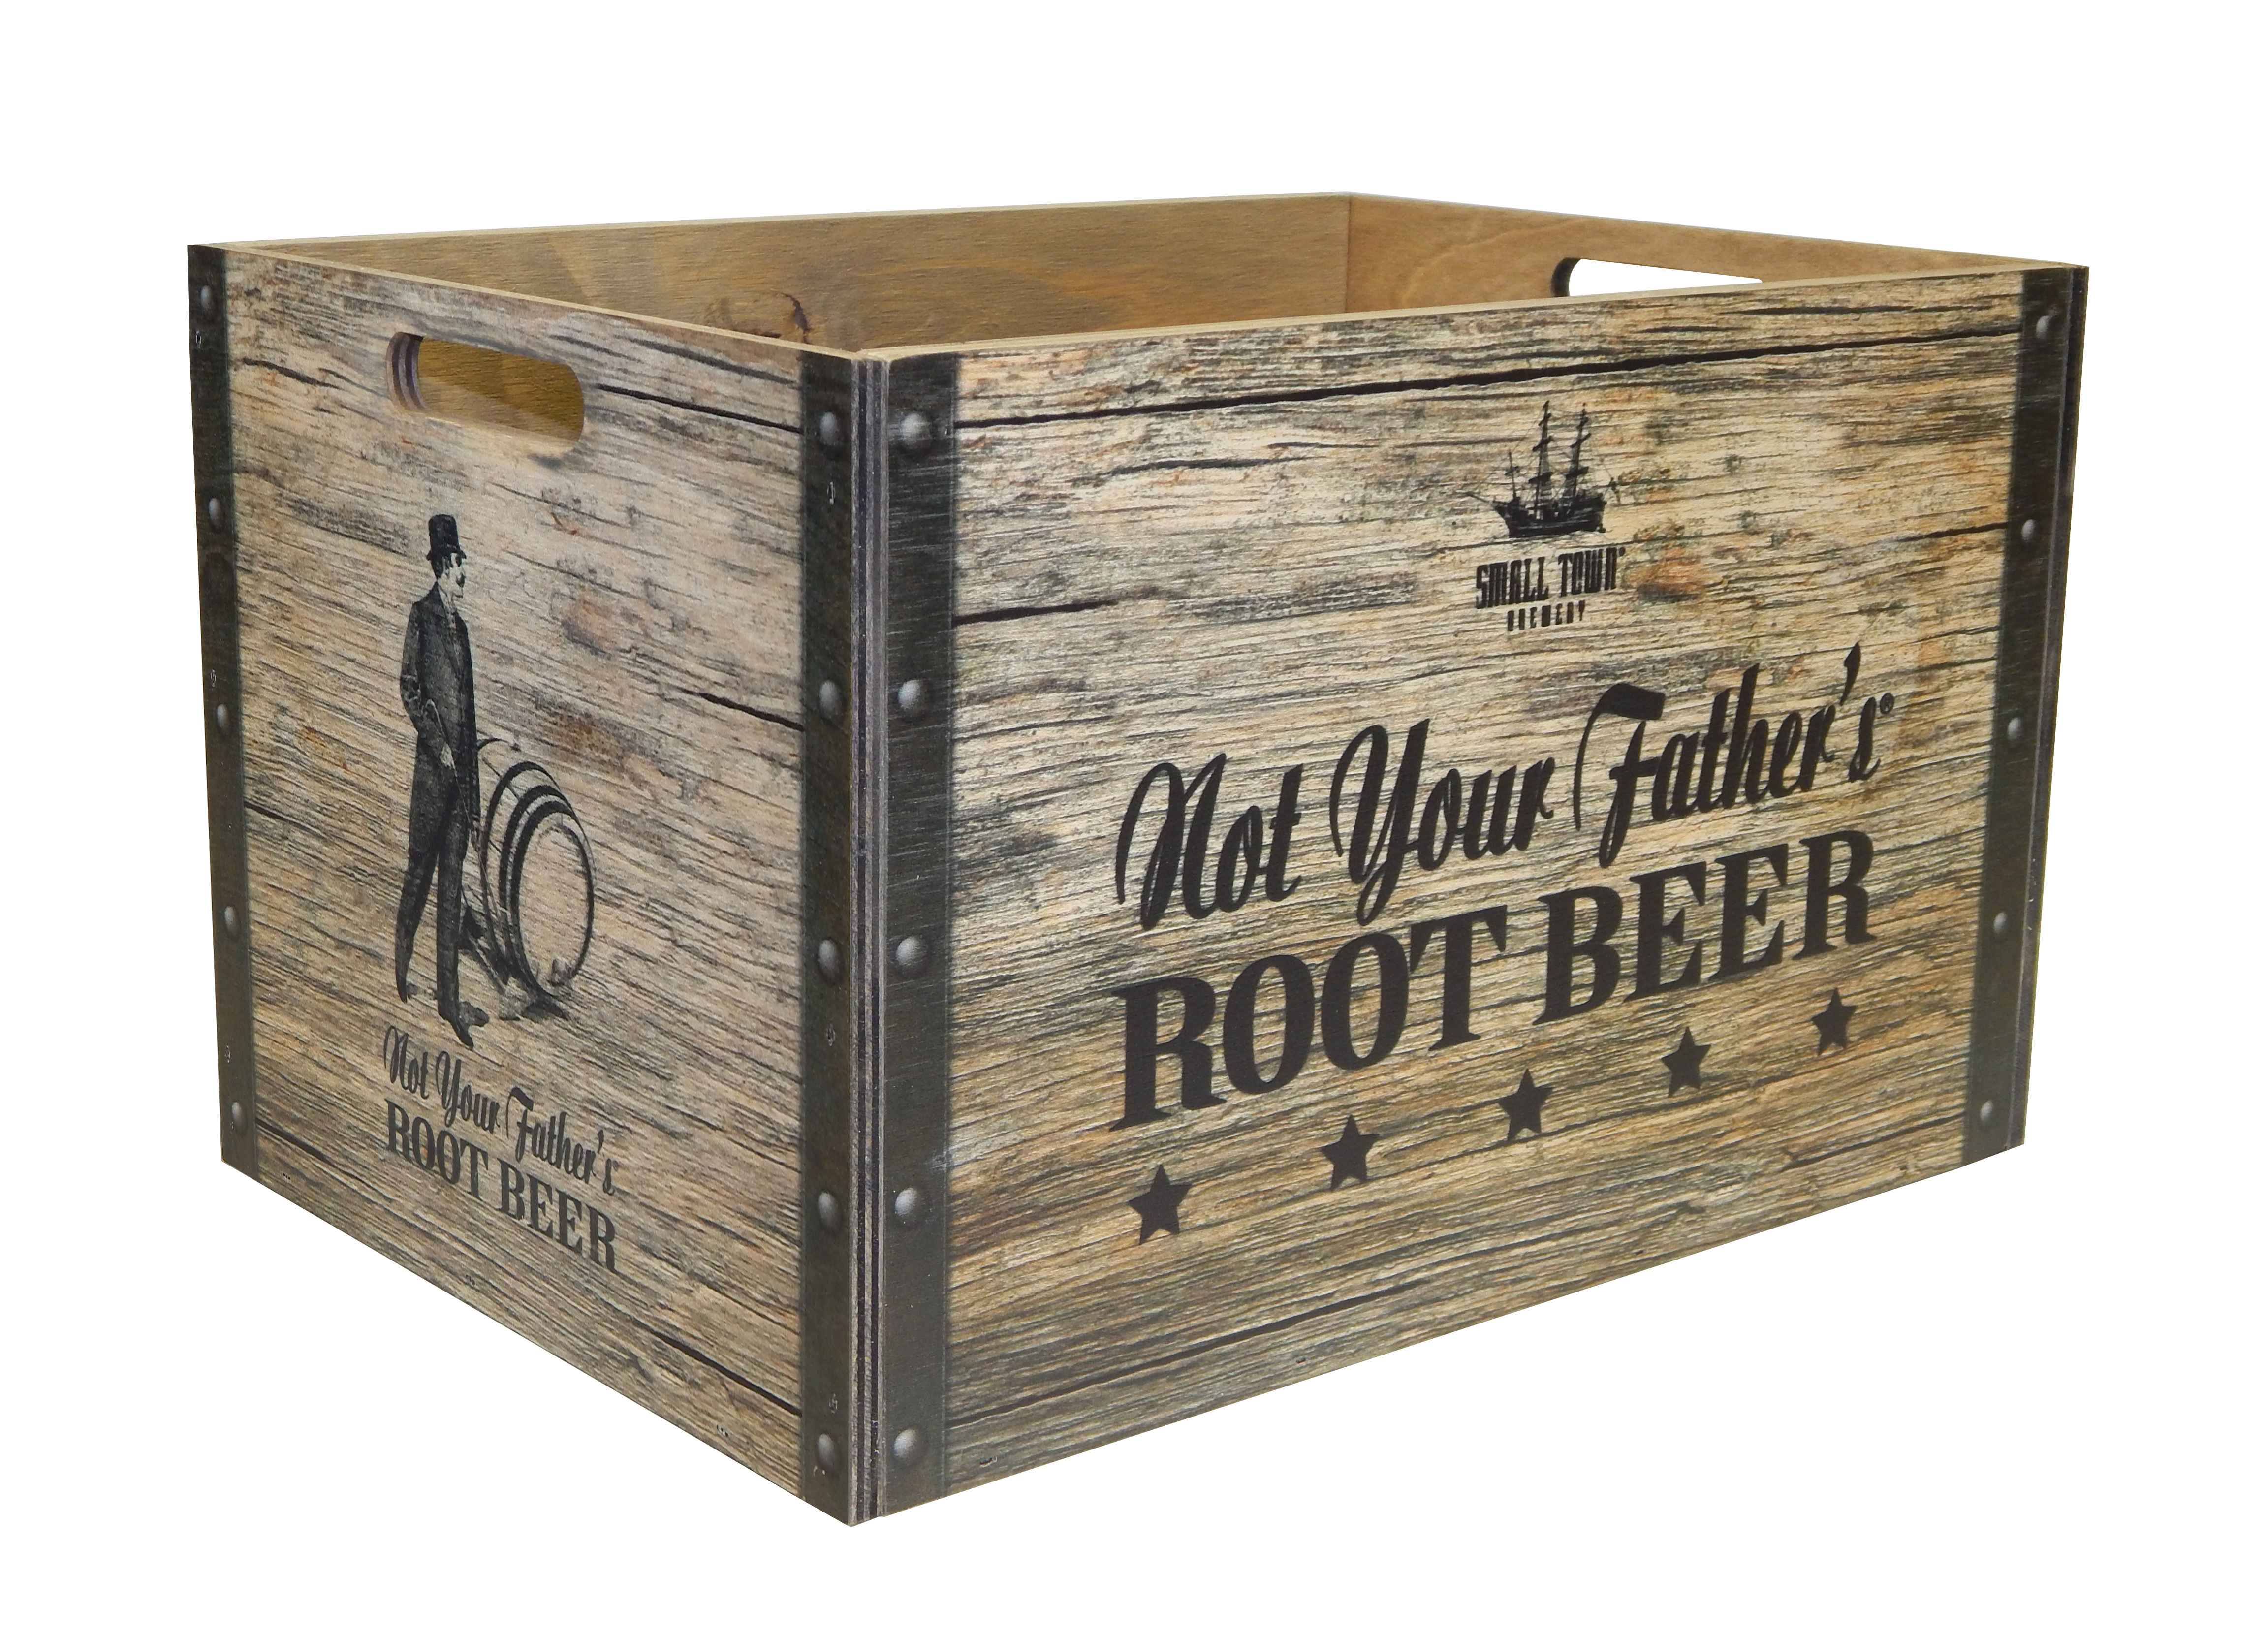 Not Your Father's Root Beer Crate